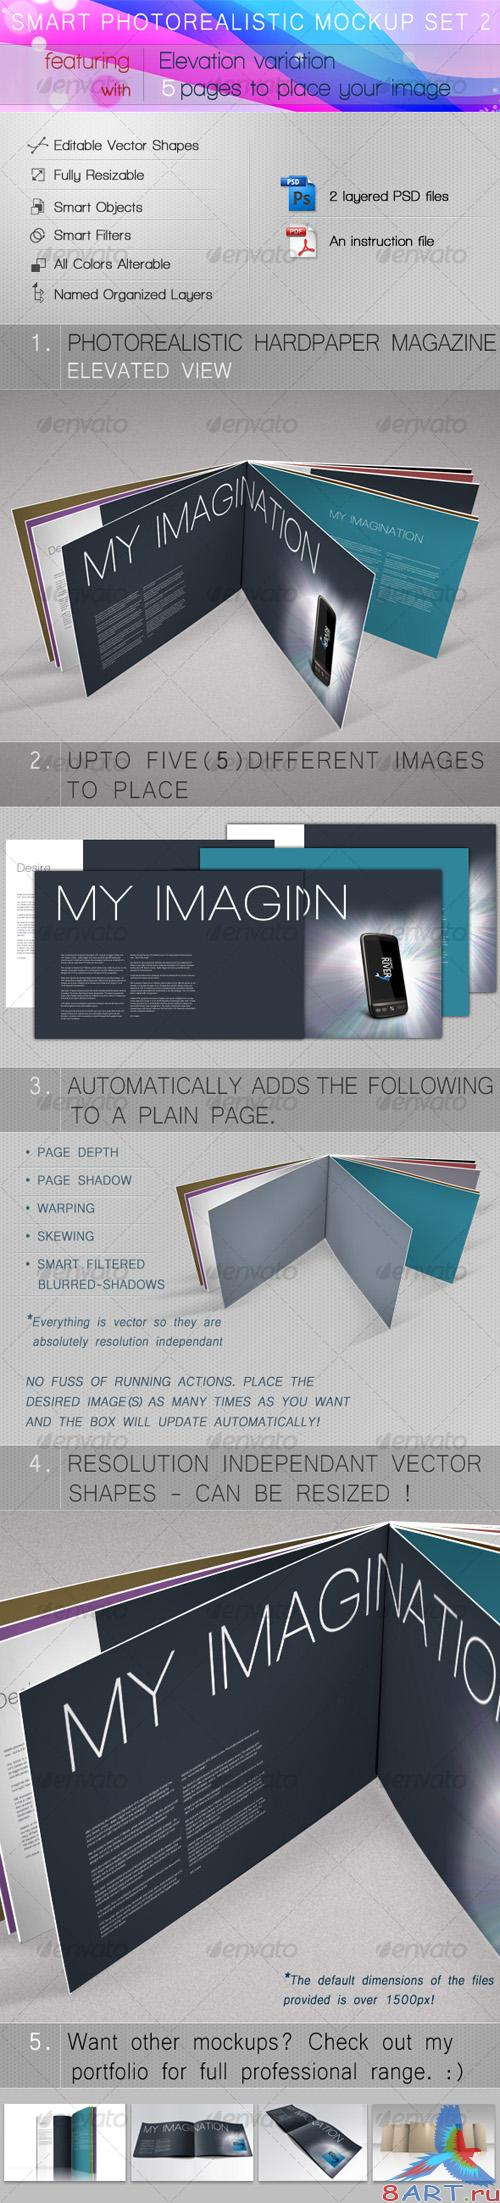 Smart Photorealistic Mockup Set 2